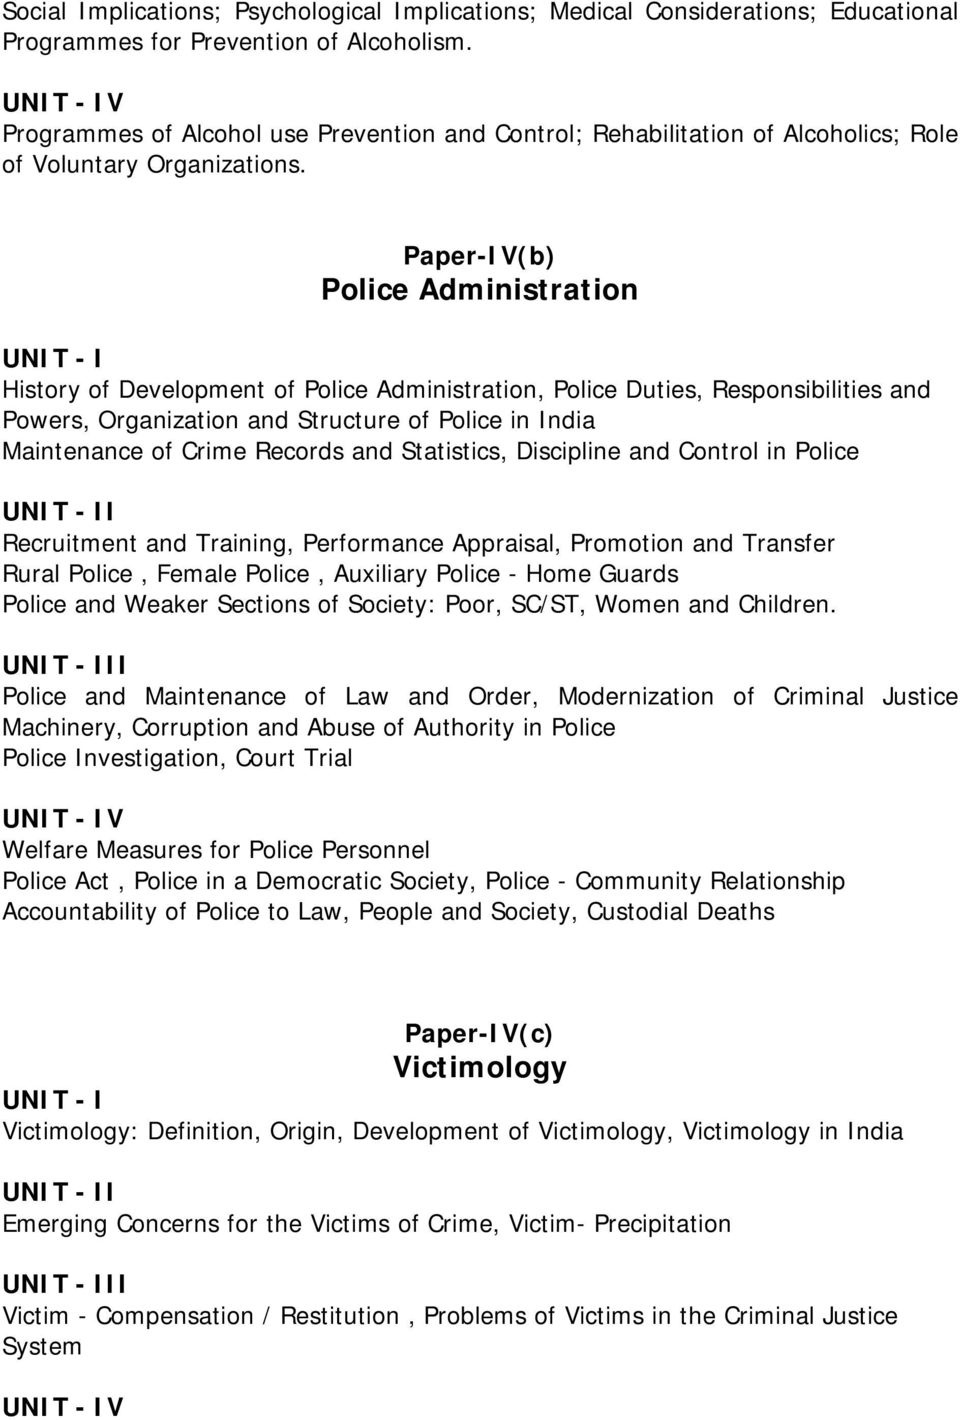 Paper-IV(b) Police Administration History of Development of Police Administration, Police Duties, Responsibilities and Powers, Organization and Structure of Police in India Maintenance of Crime